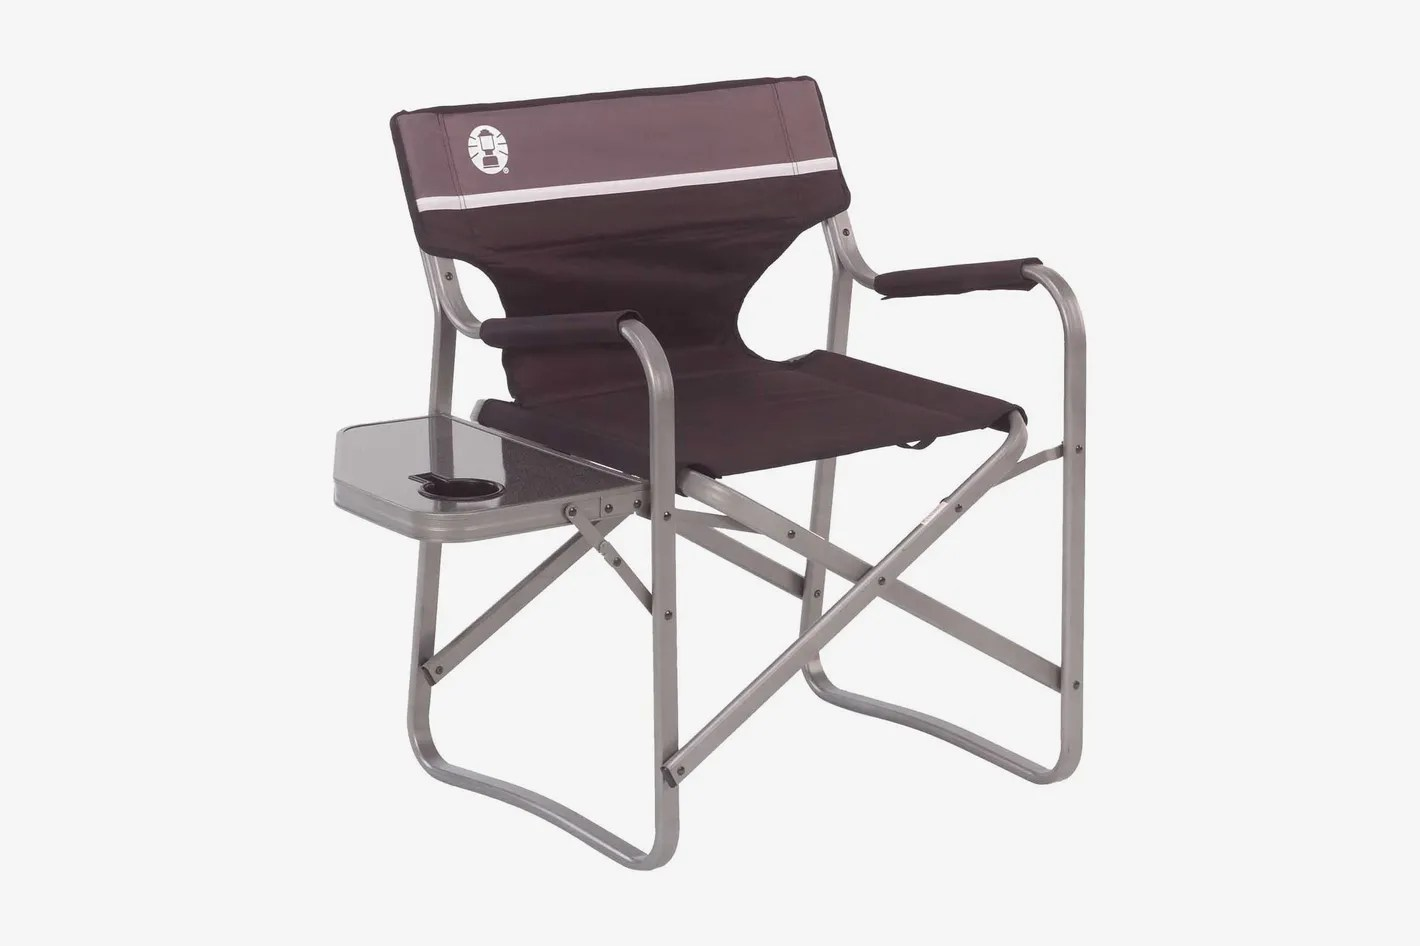 portable folding chairs loveseat and chair a half 11 best lawnchairs camping 2018 coleman deck with side table